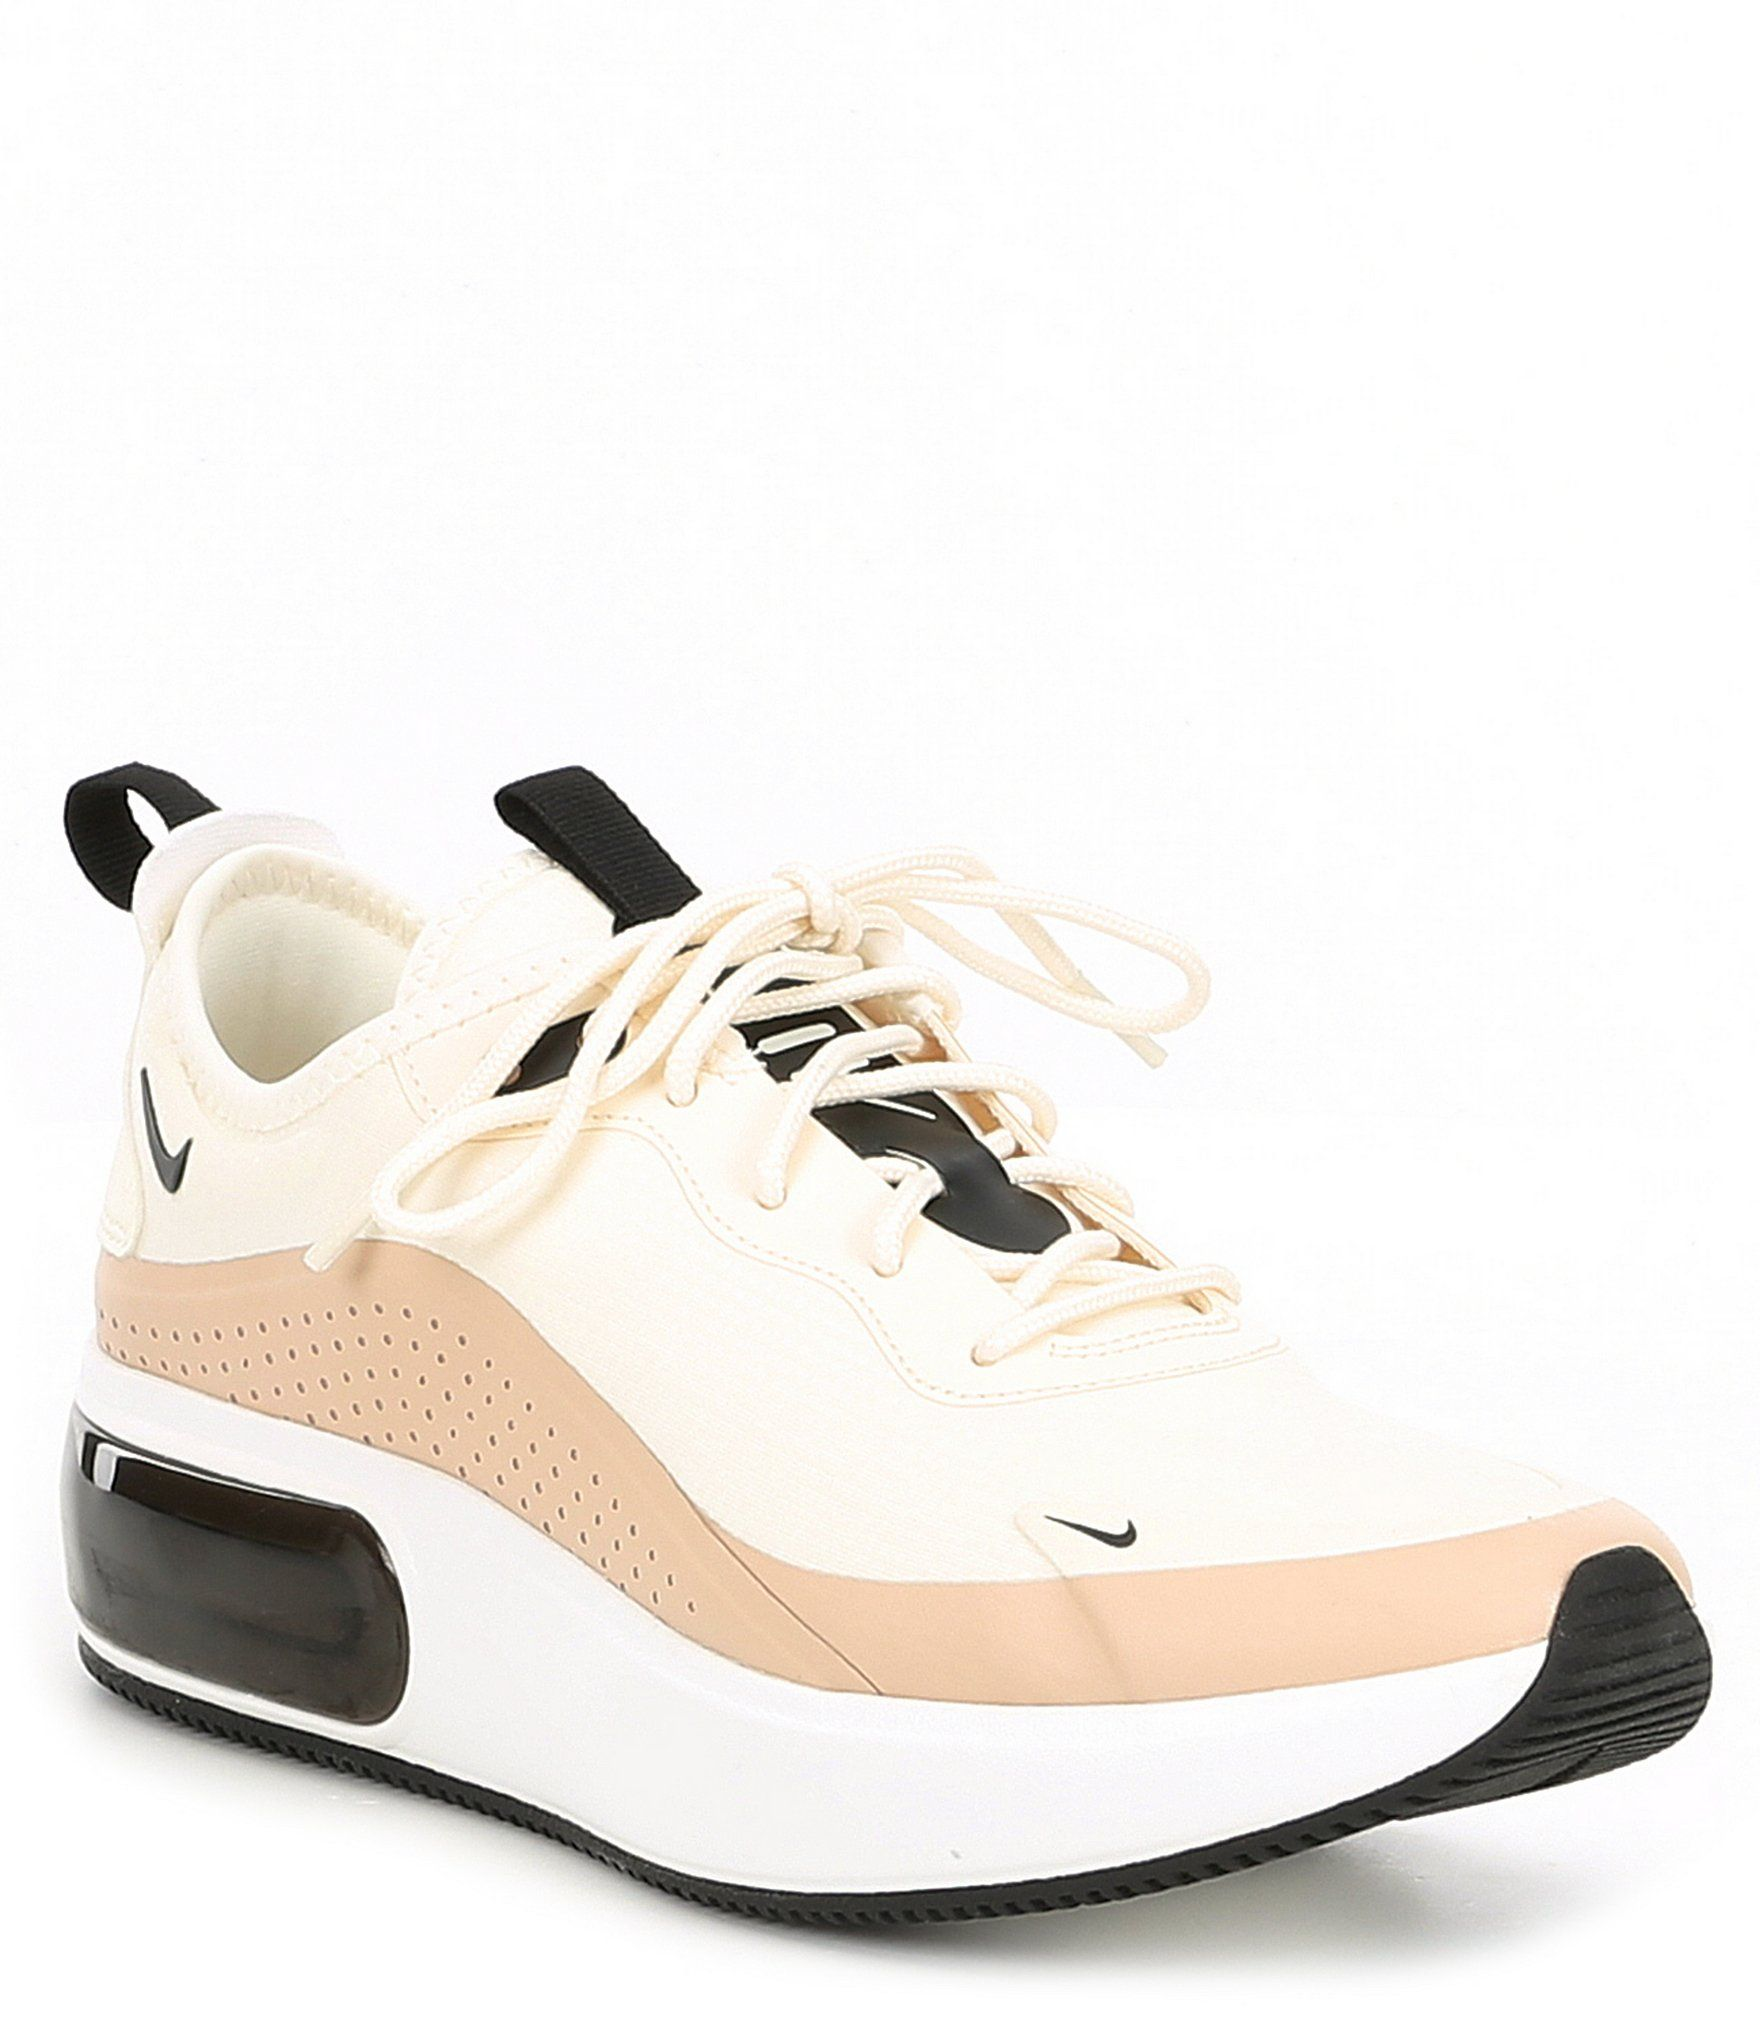 Nike Women's Air Max Dia Lifestyle Shoes | Air max women ...